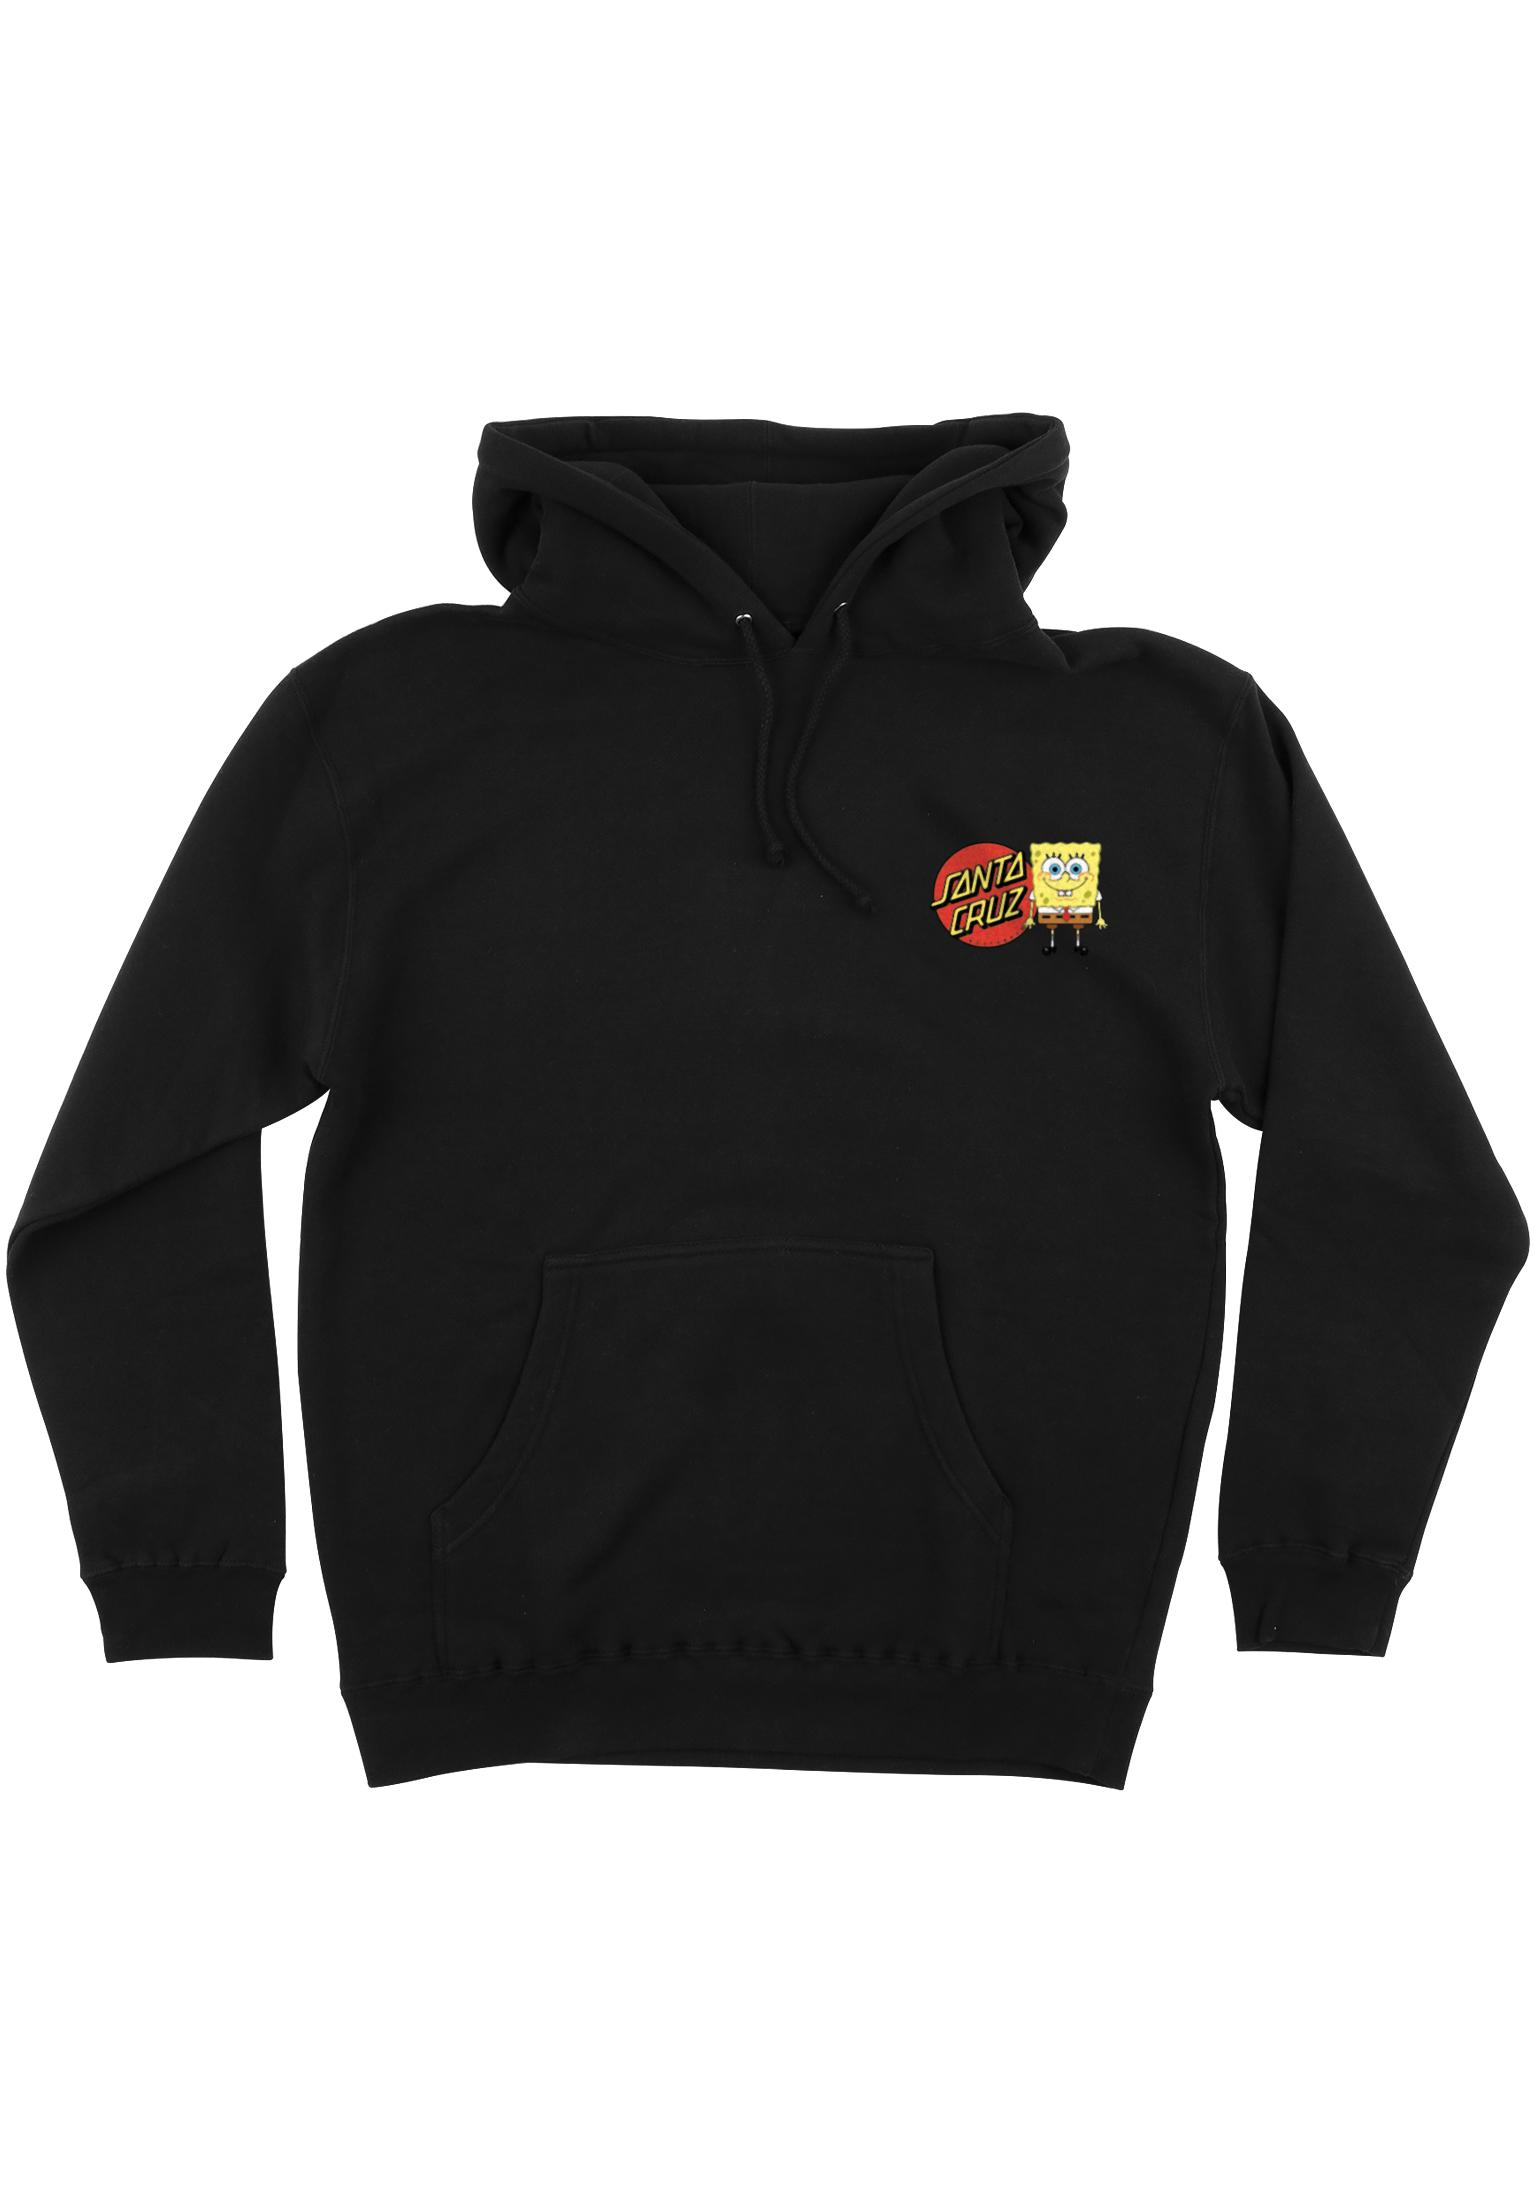 santa-cruz-hoodies-sb-sponge-group-hooded-black-rueckenansicht-0445493.jpg